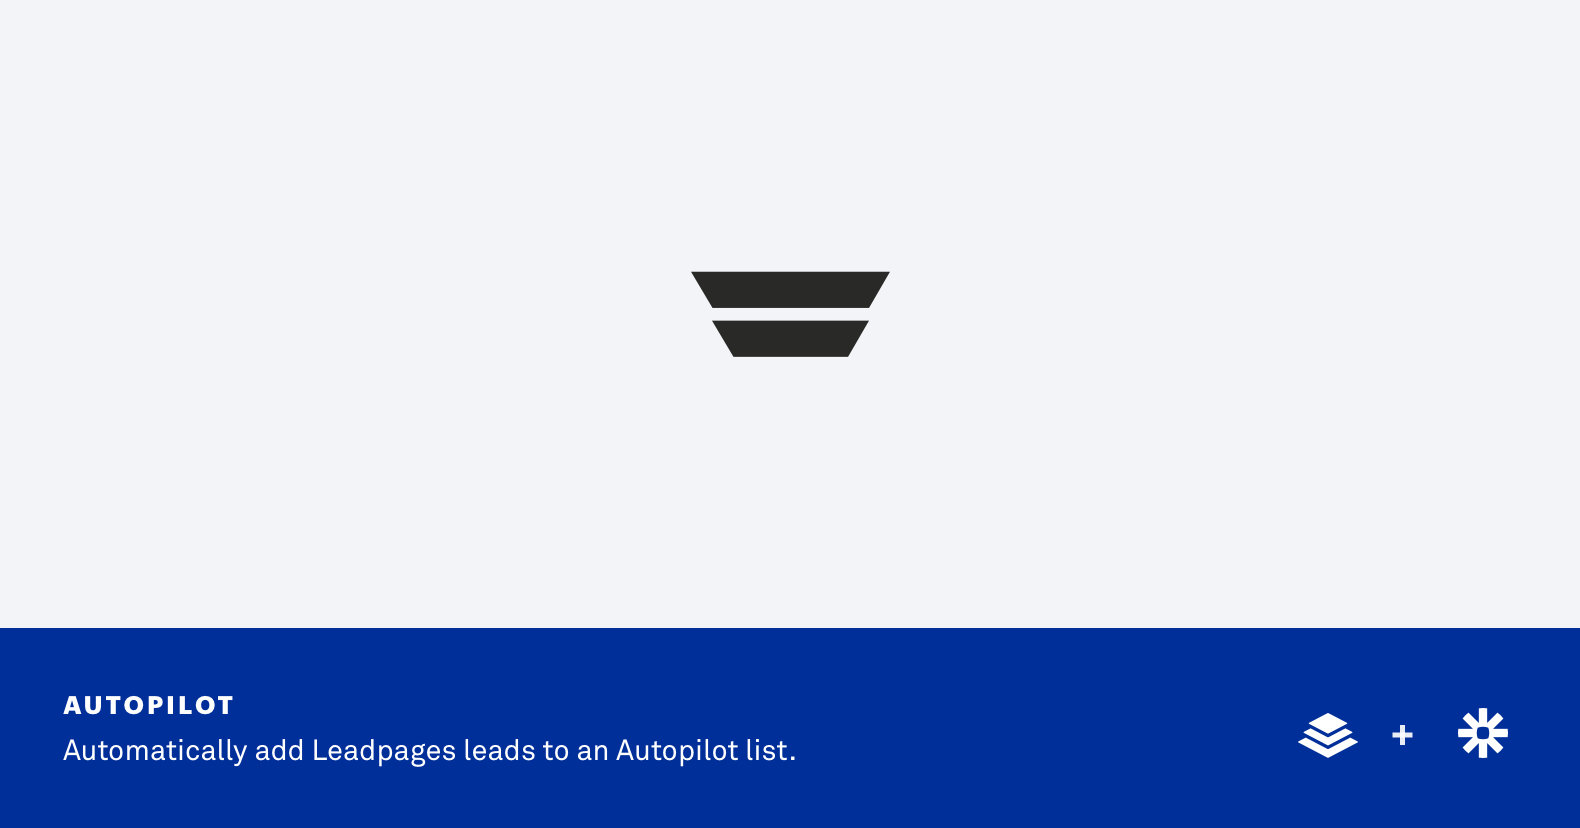 Integrate Autopilot with Leadpages via Zapier Integration